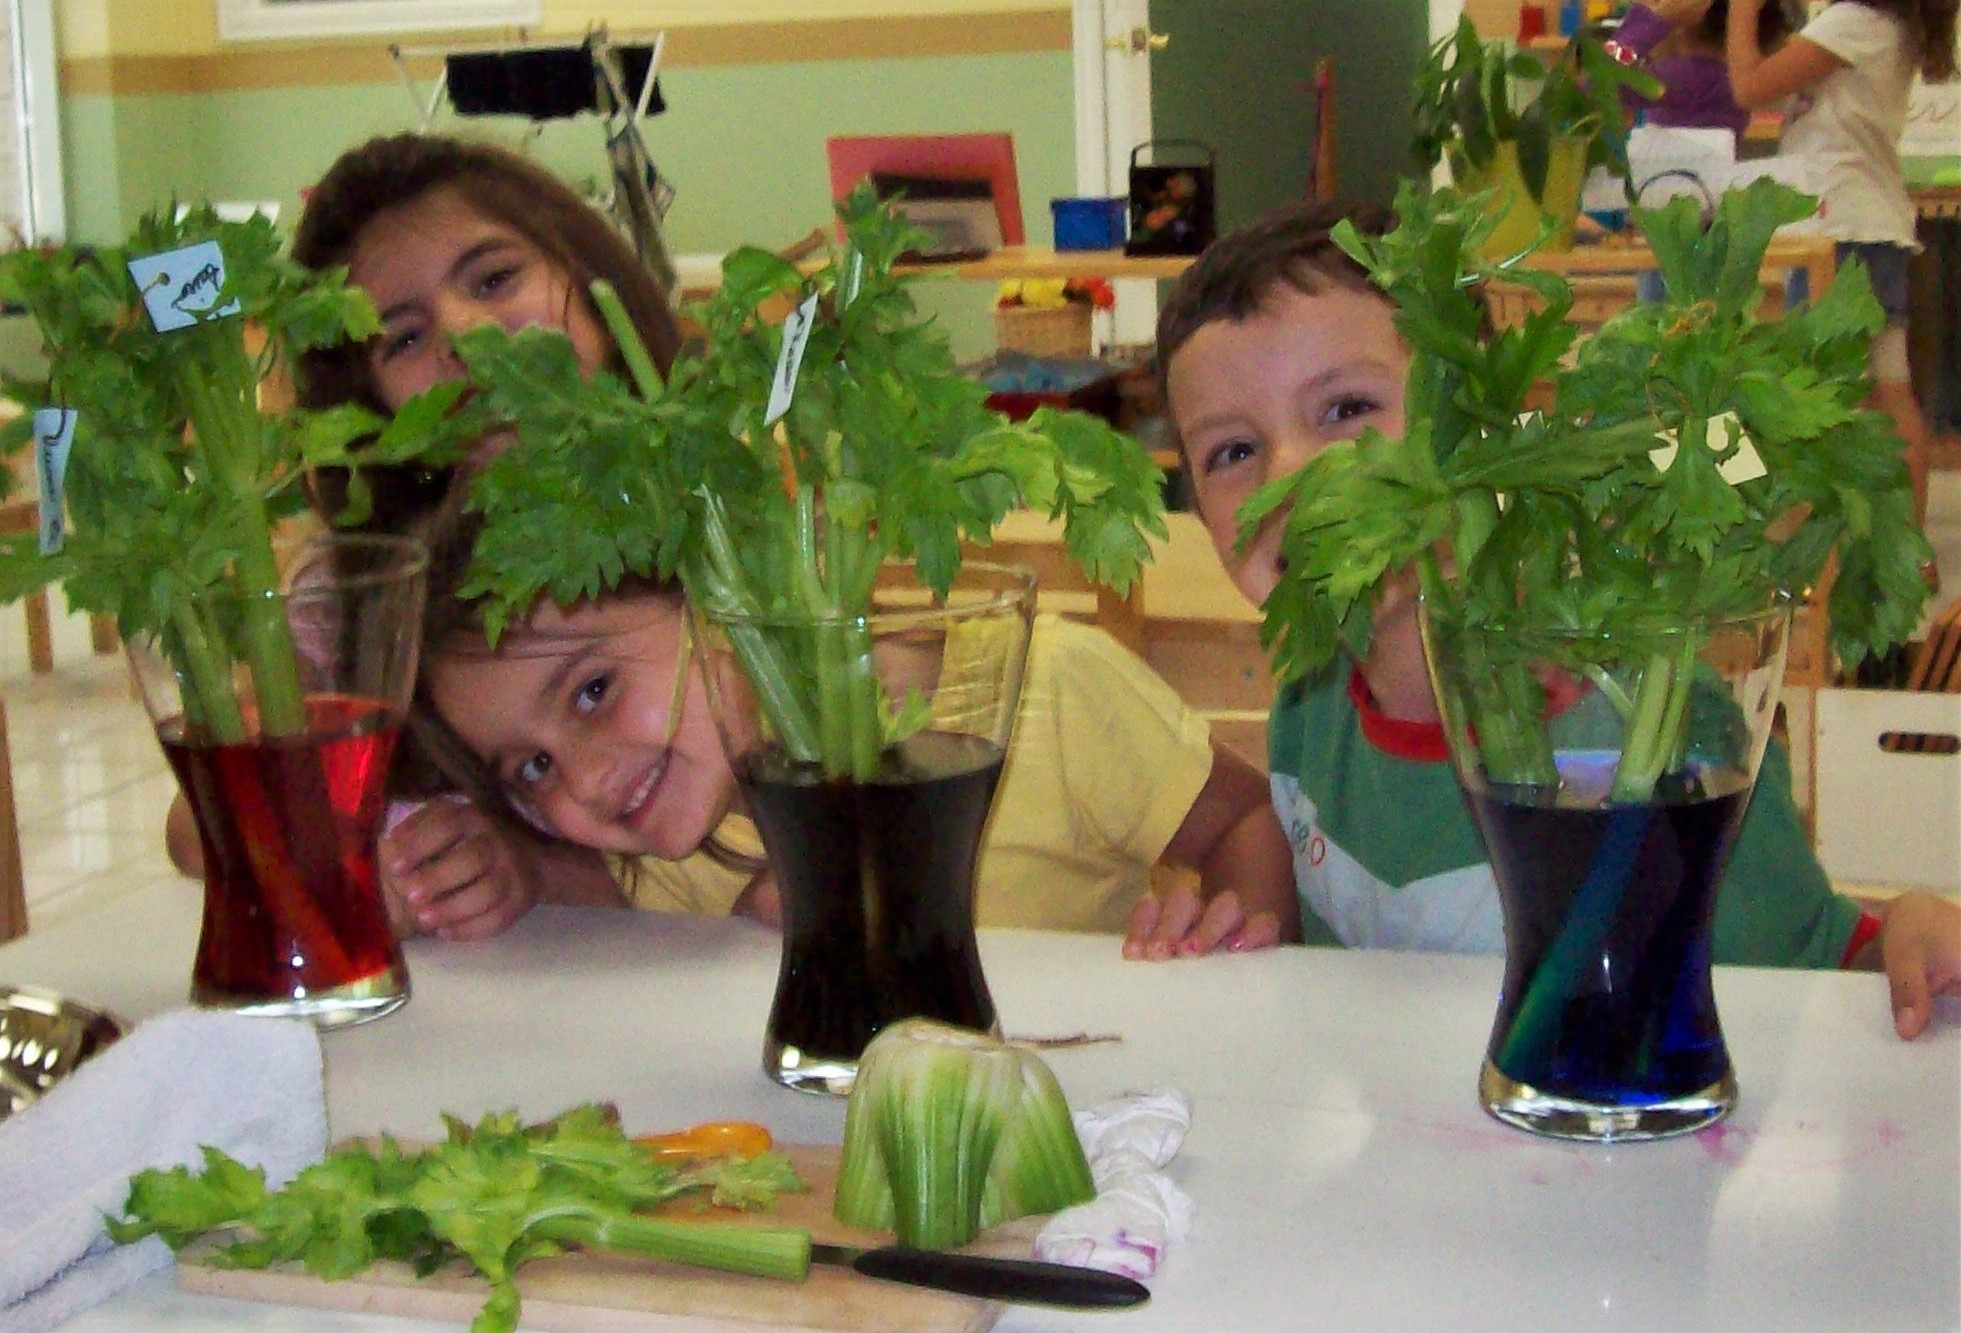 Chidren helping with indoor gardens at Kaban Montessori in Mississauga.